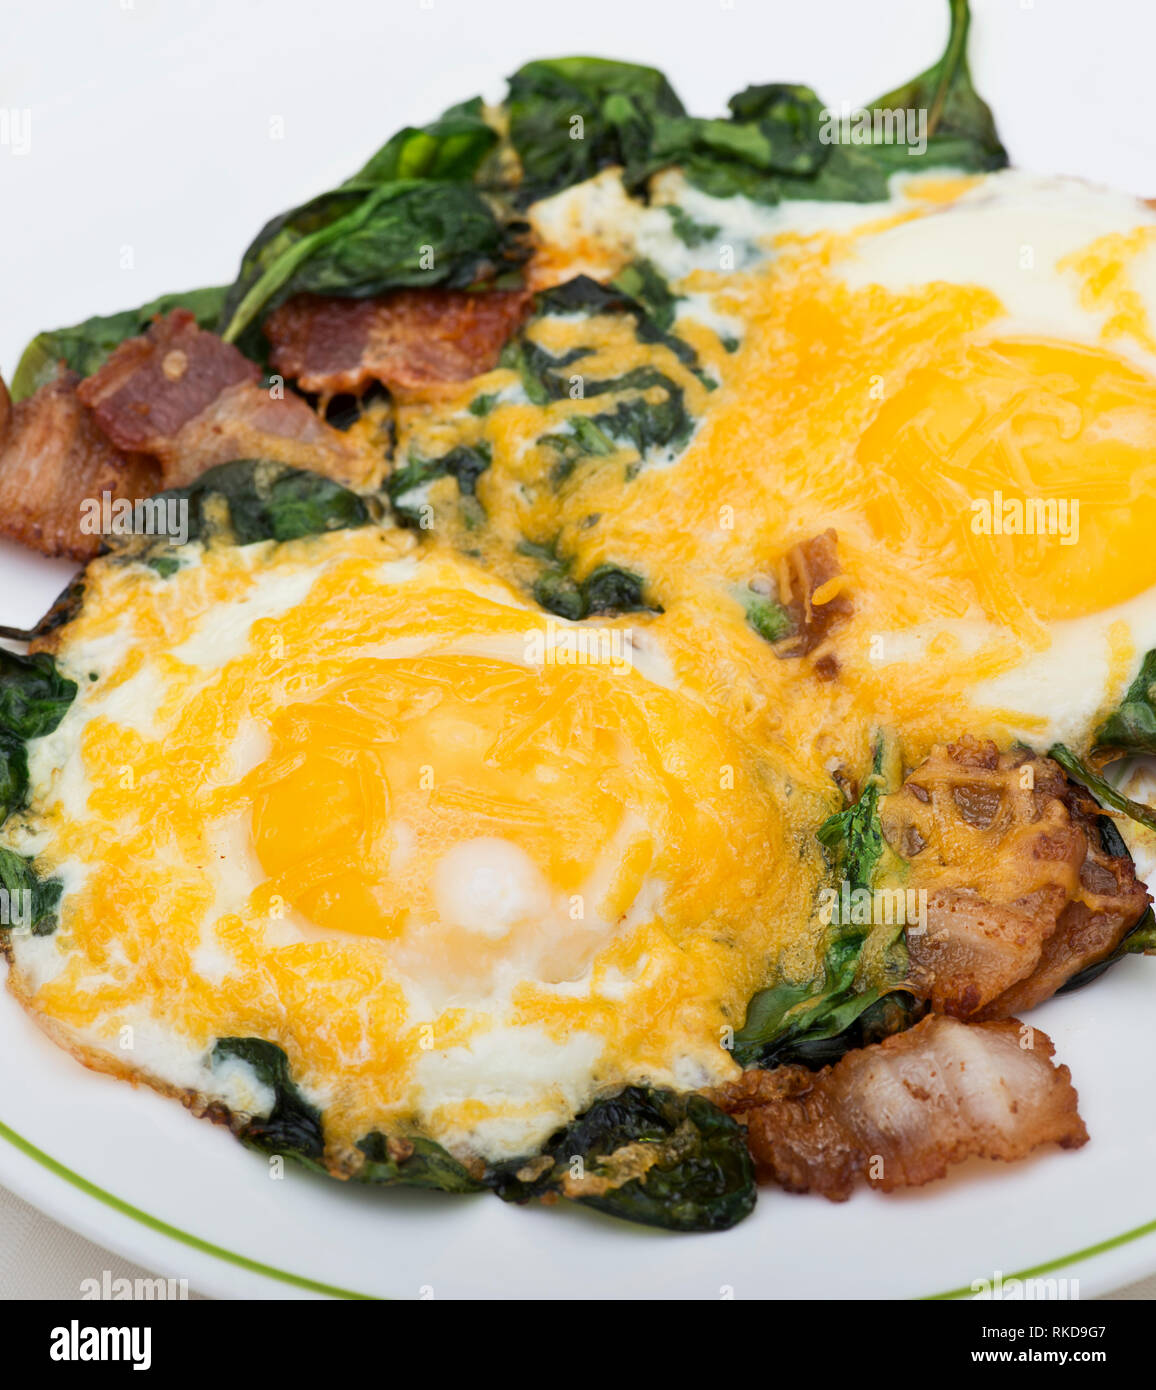 Keto Diet Breakfast With Eggs Spinach And Bacon Low Carb High Fat